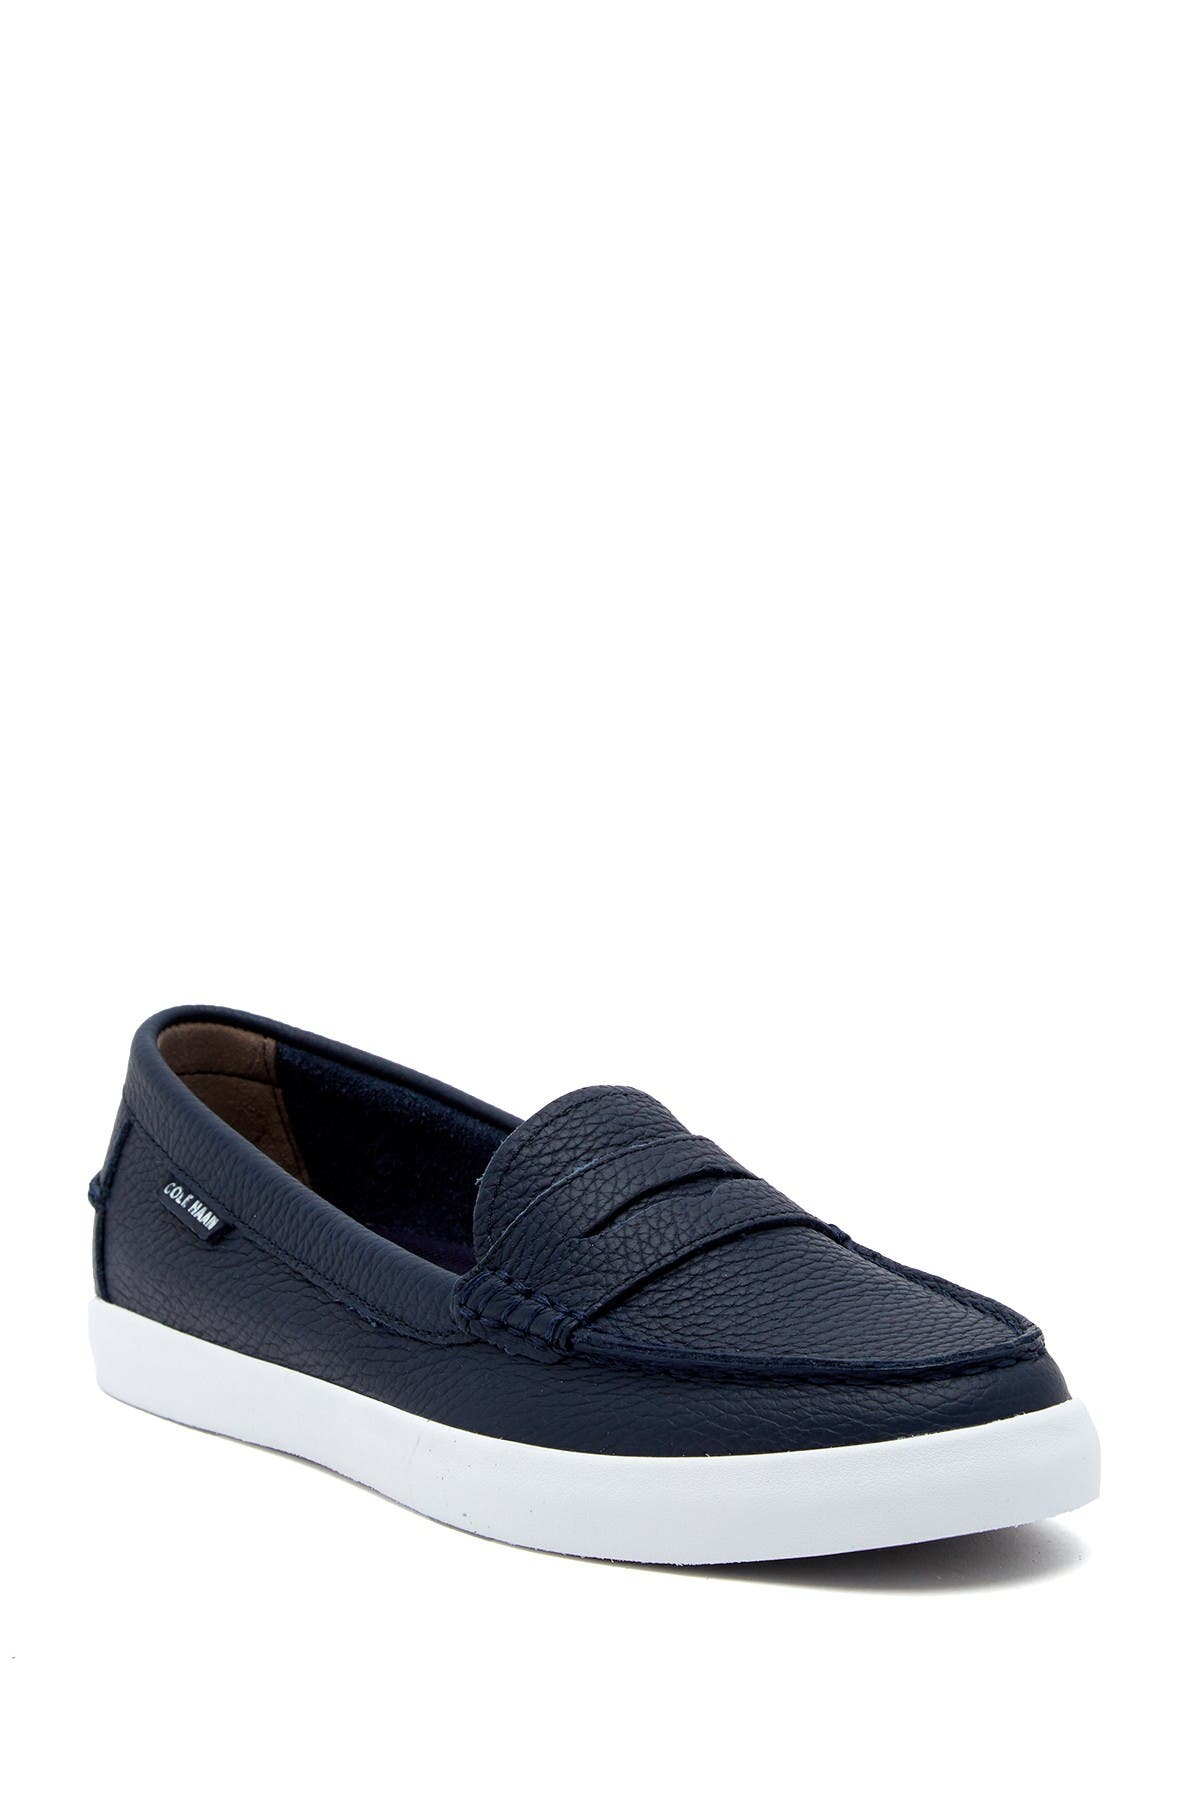 Image of Cole Haan Nantucket Leather Loafer II